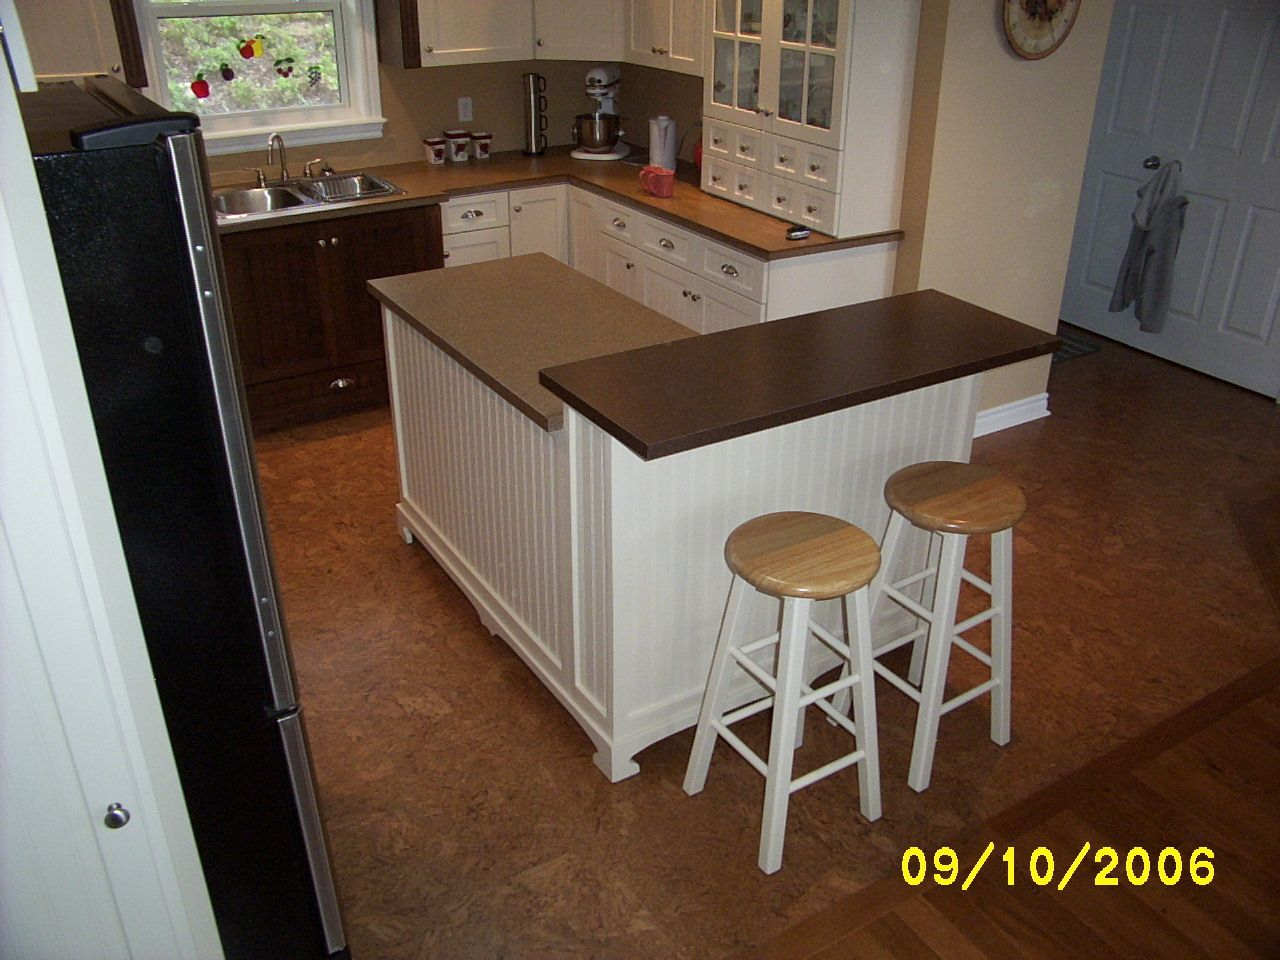 Seating diy with kitchen island homemade kitchen island for Kitchen island with seating